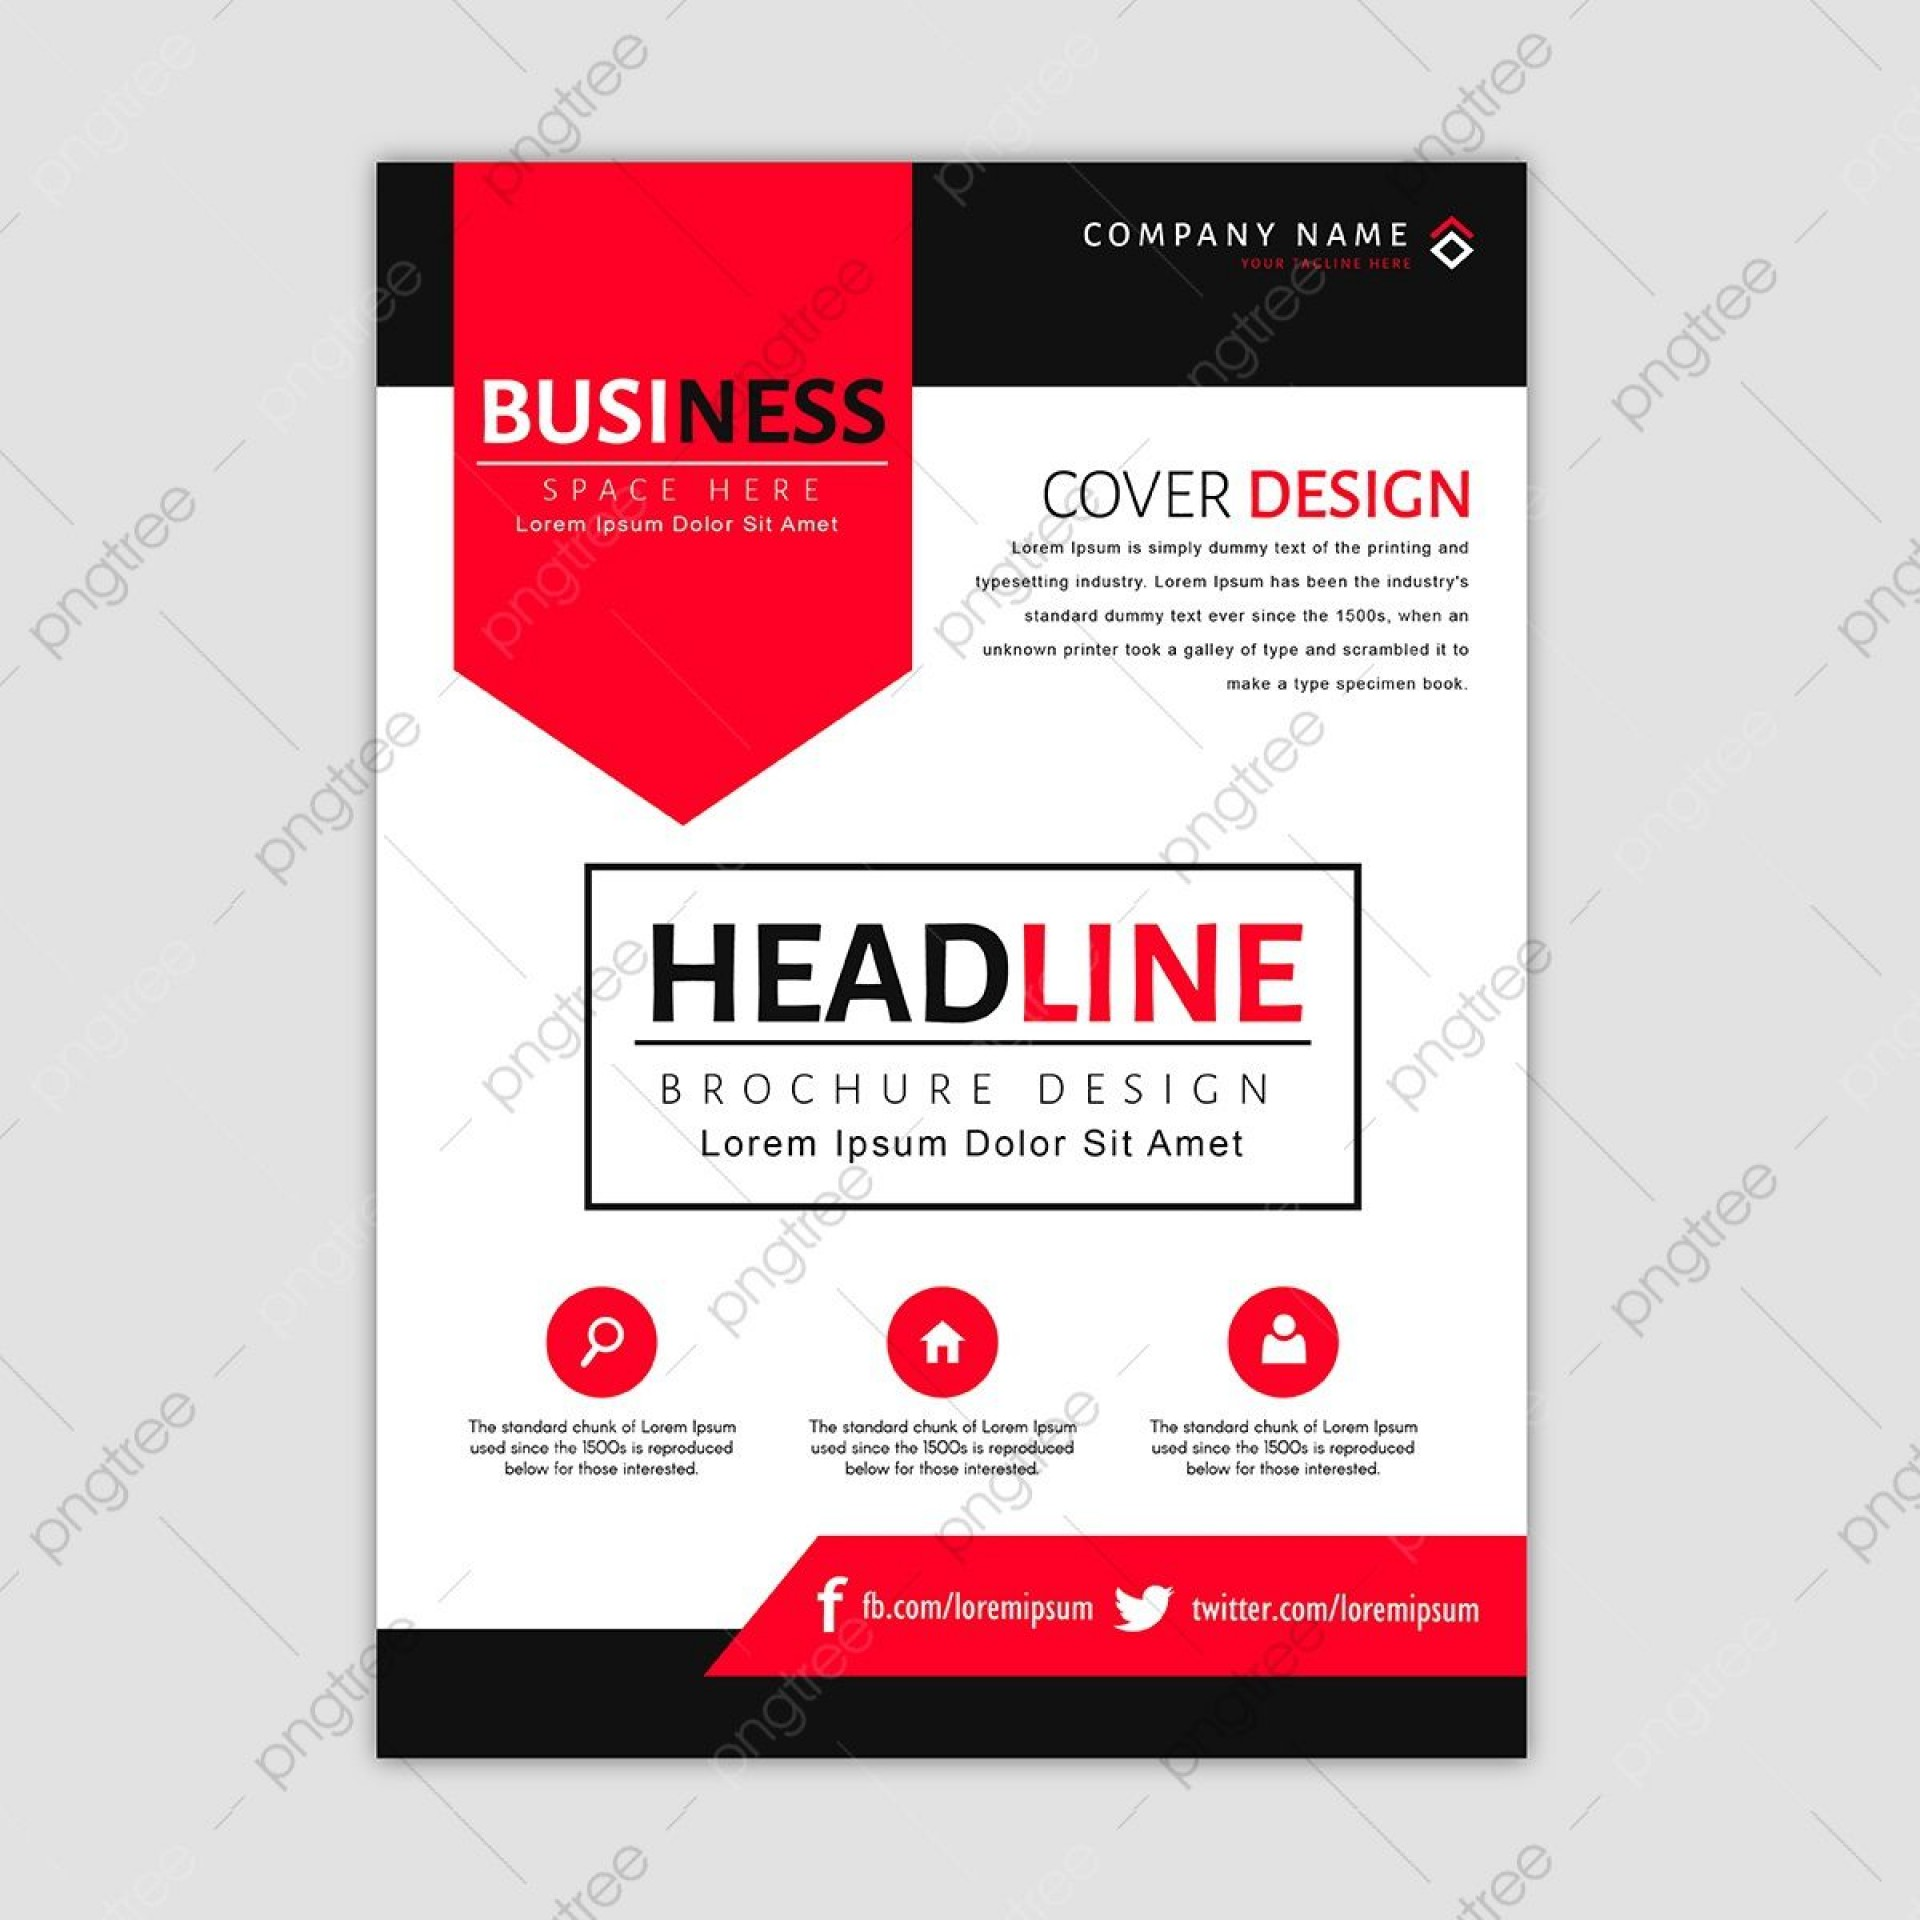 008 Frightening Busines Brochure Design Template Free Download Photo 1920